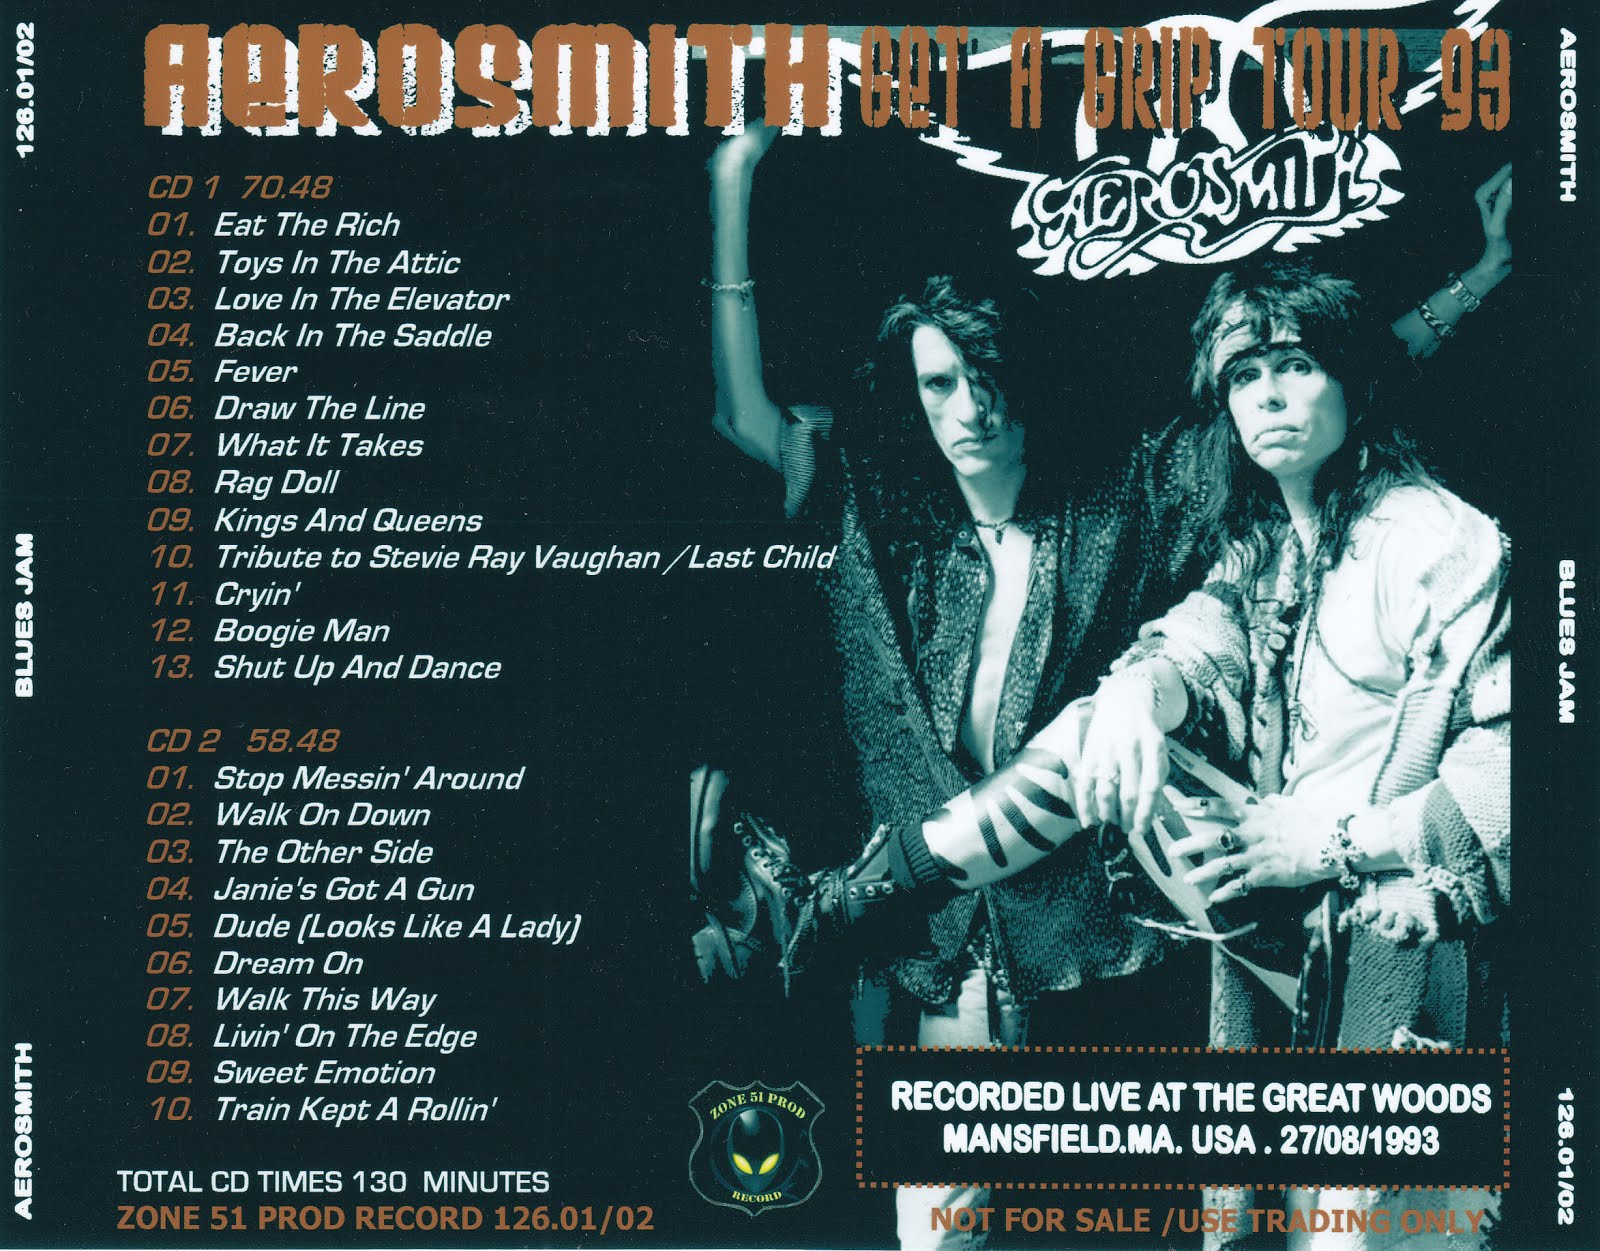 Aerosmith Bootlegs Cover Arts Blues Jam Mansfield 1993